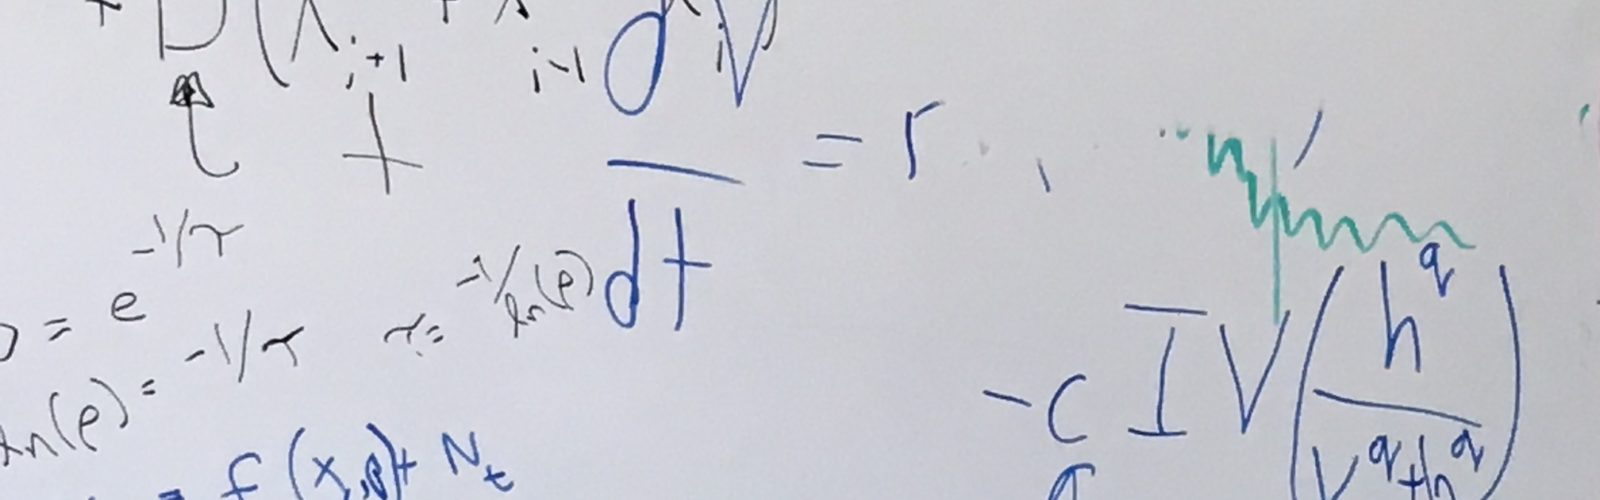 Whiteboard equations